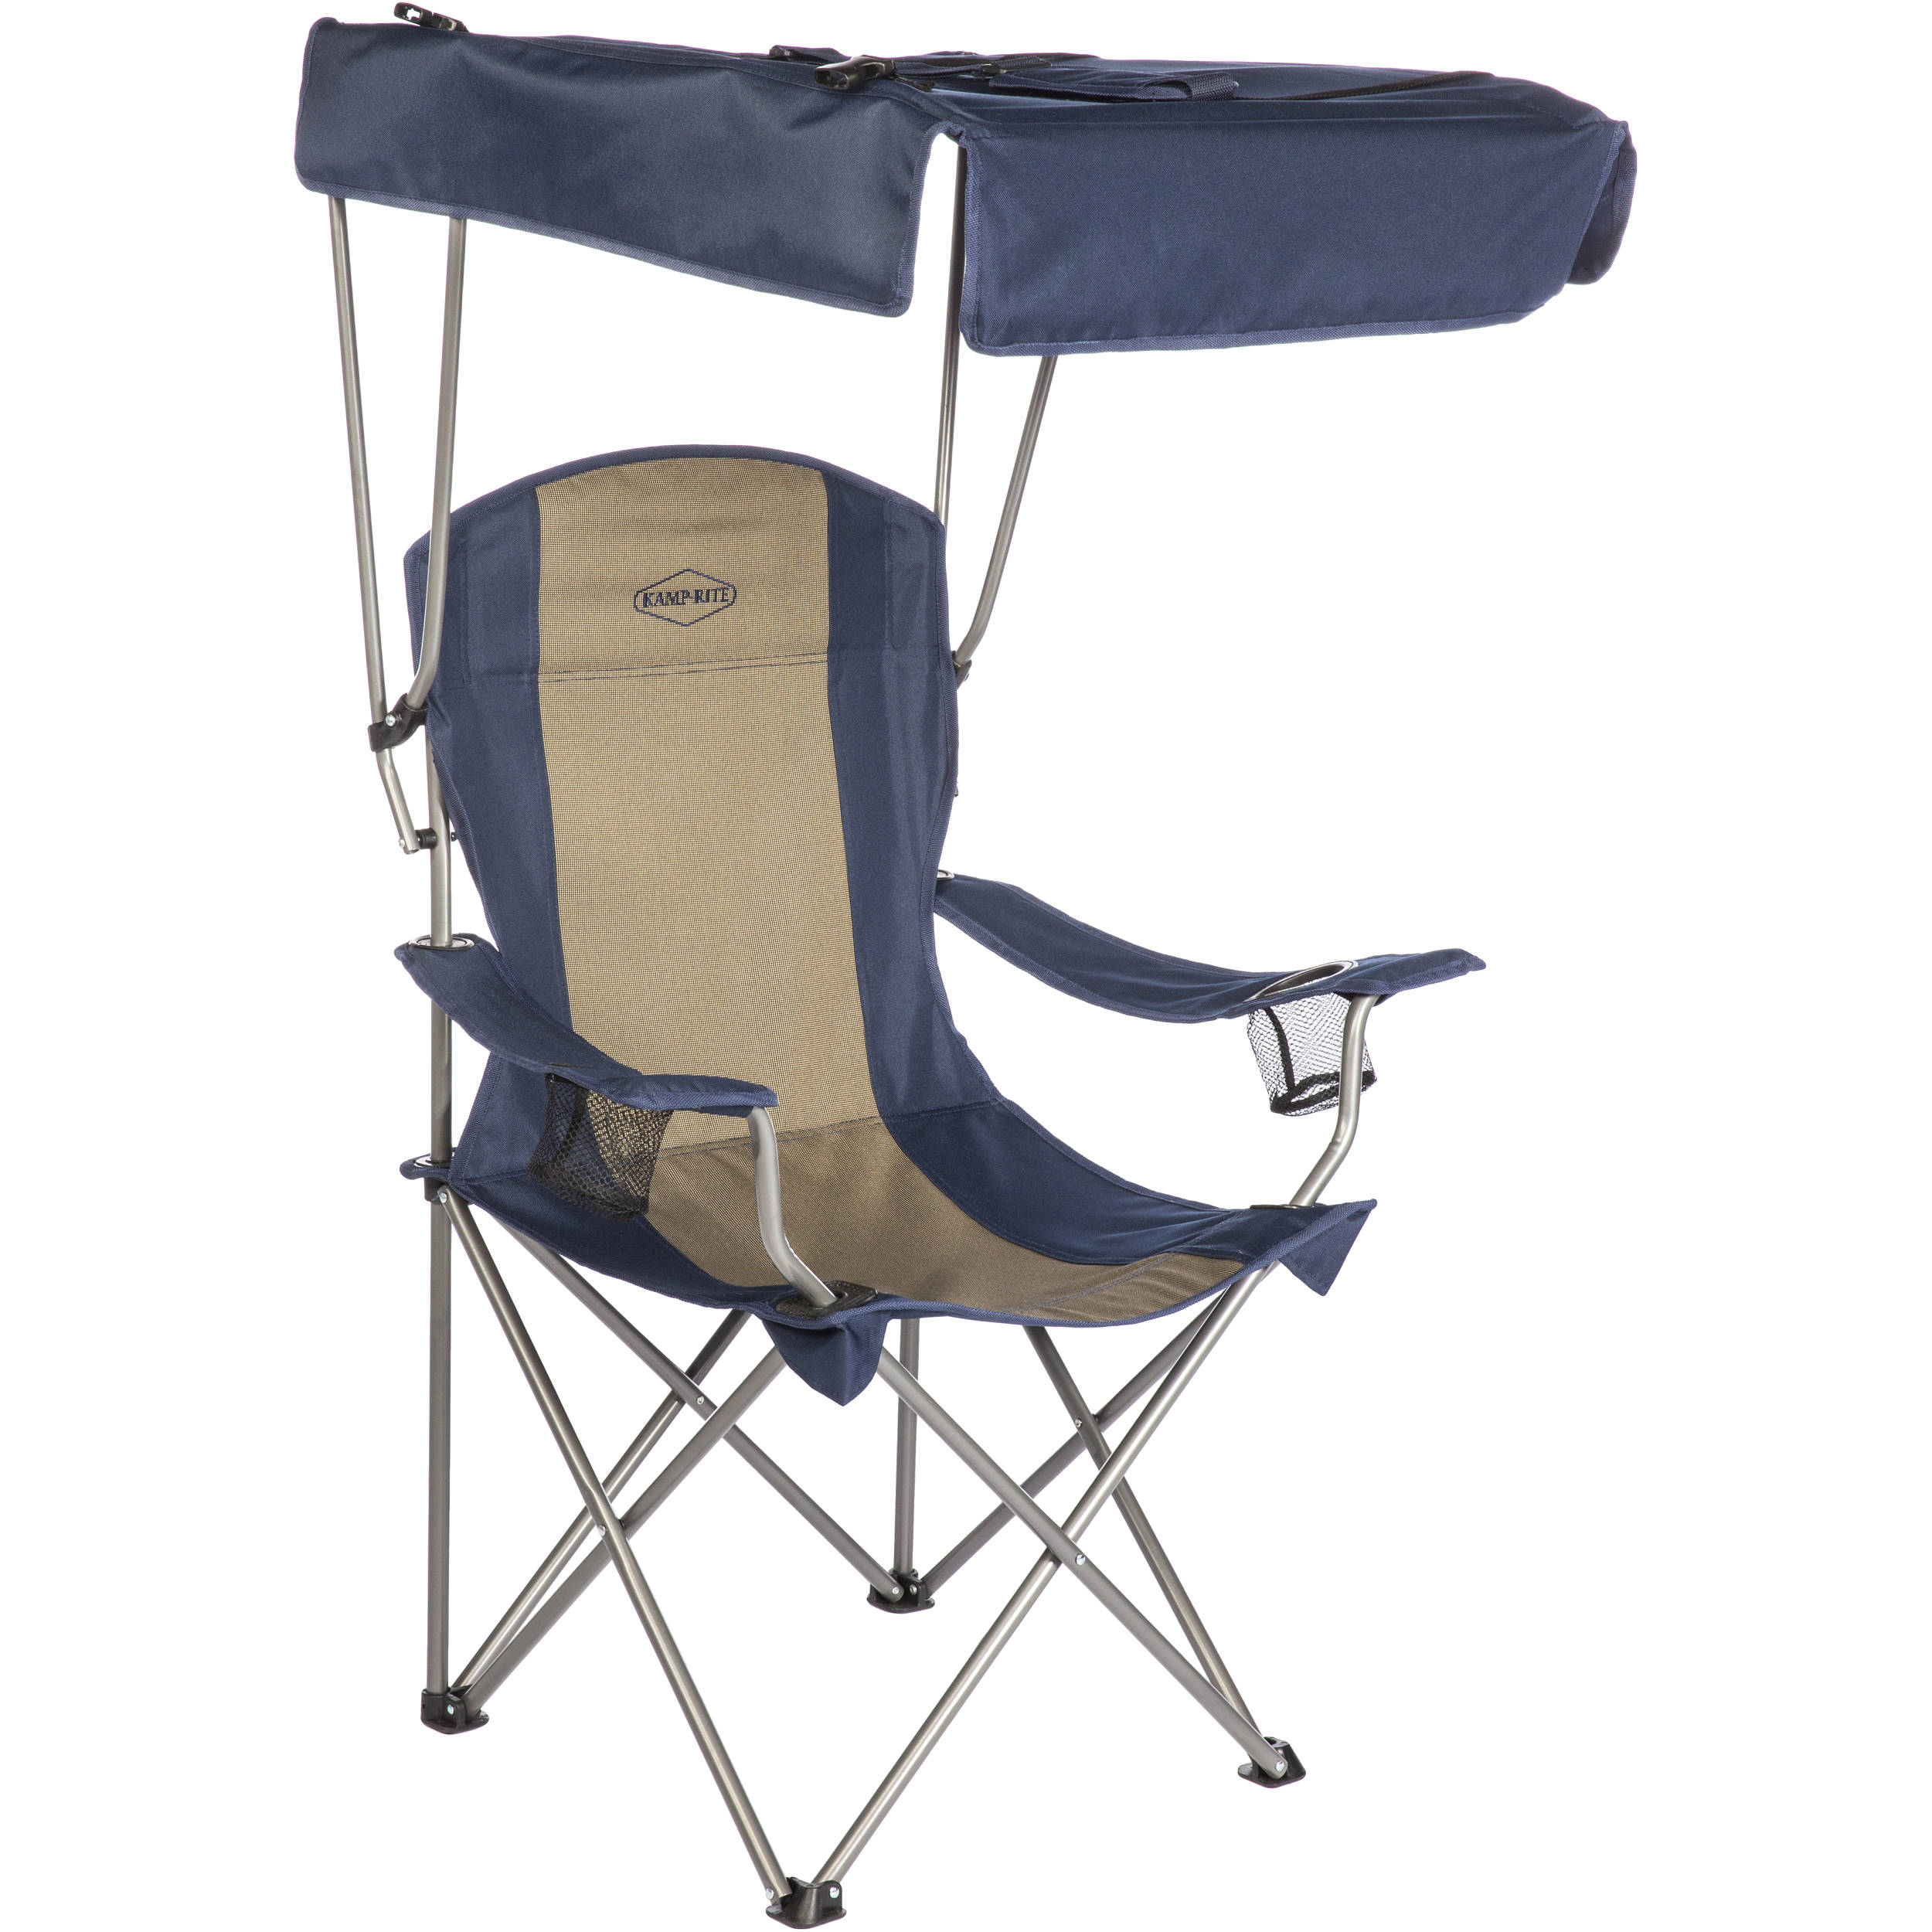 KAMPRITE Folding Chair with Shade Canopy CC463 BH Photo